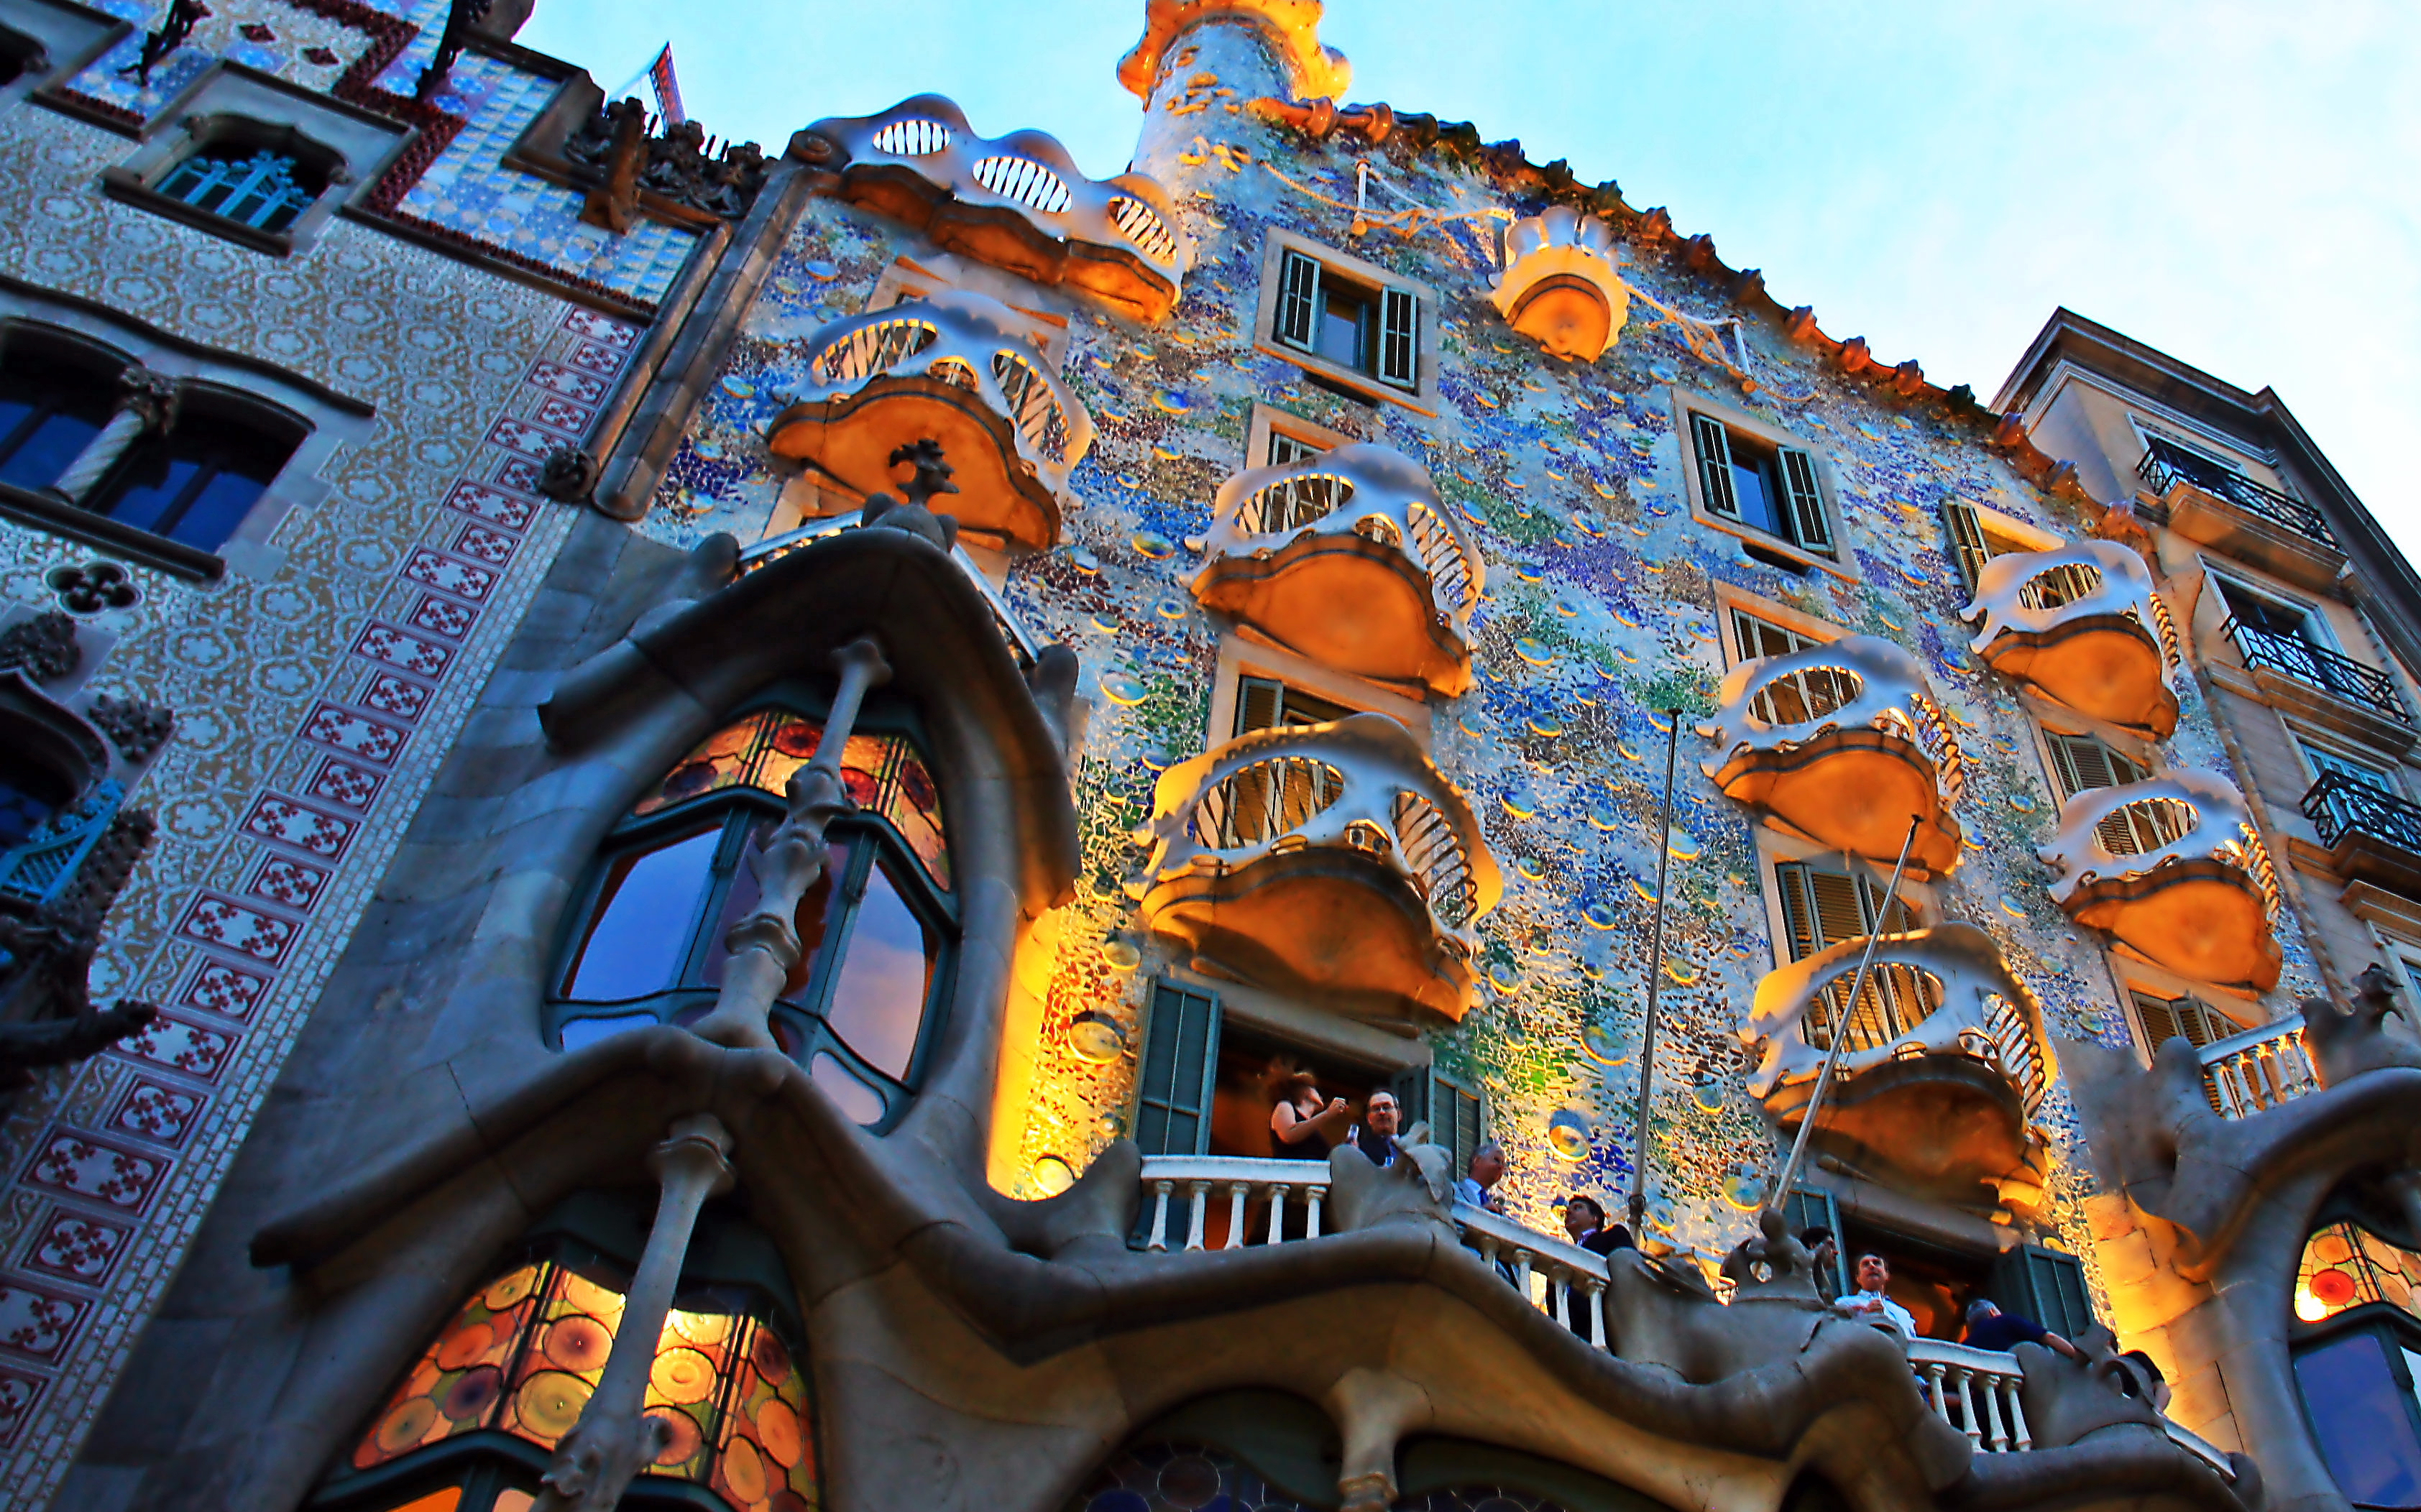 gaudi tour with skip the line access to casa battlo